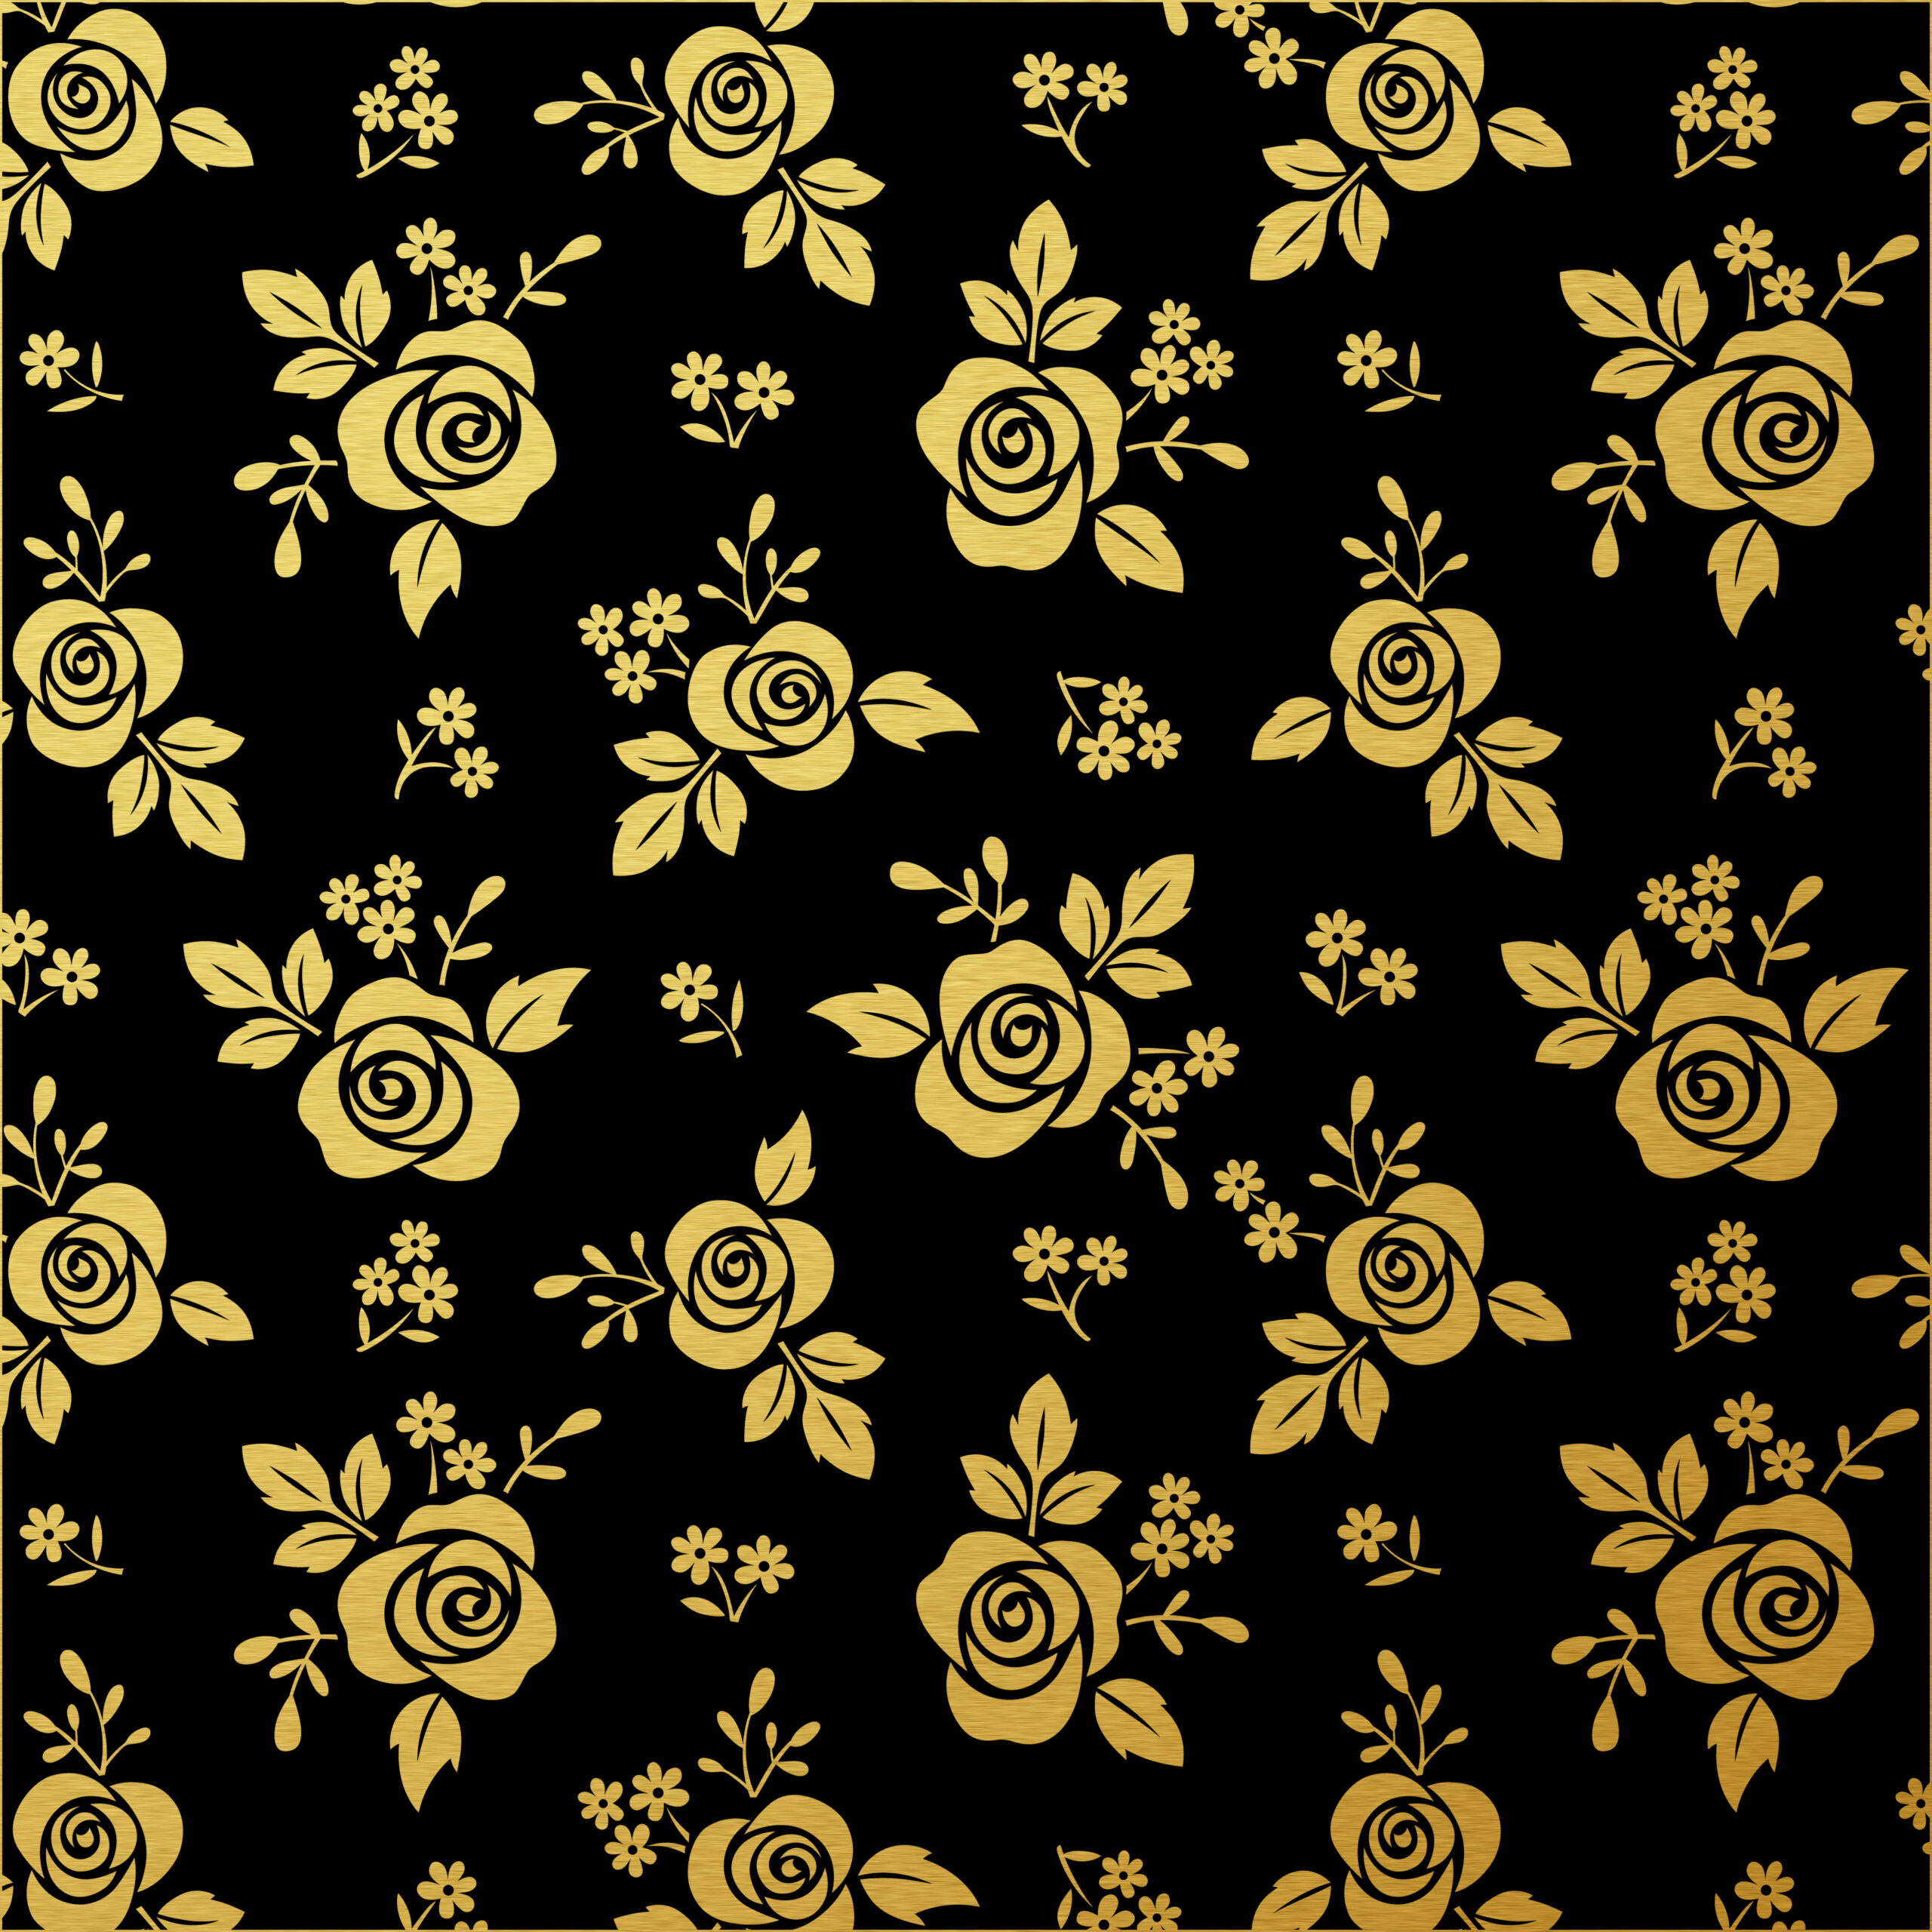 Scrapbook Paper Black White And Gold Leaf Free Pretty Things For You